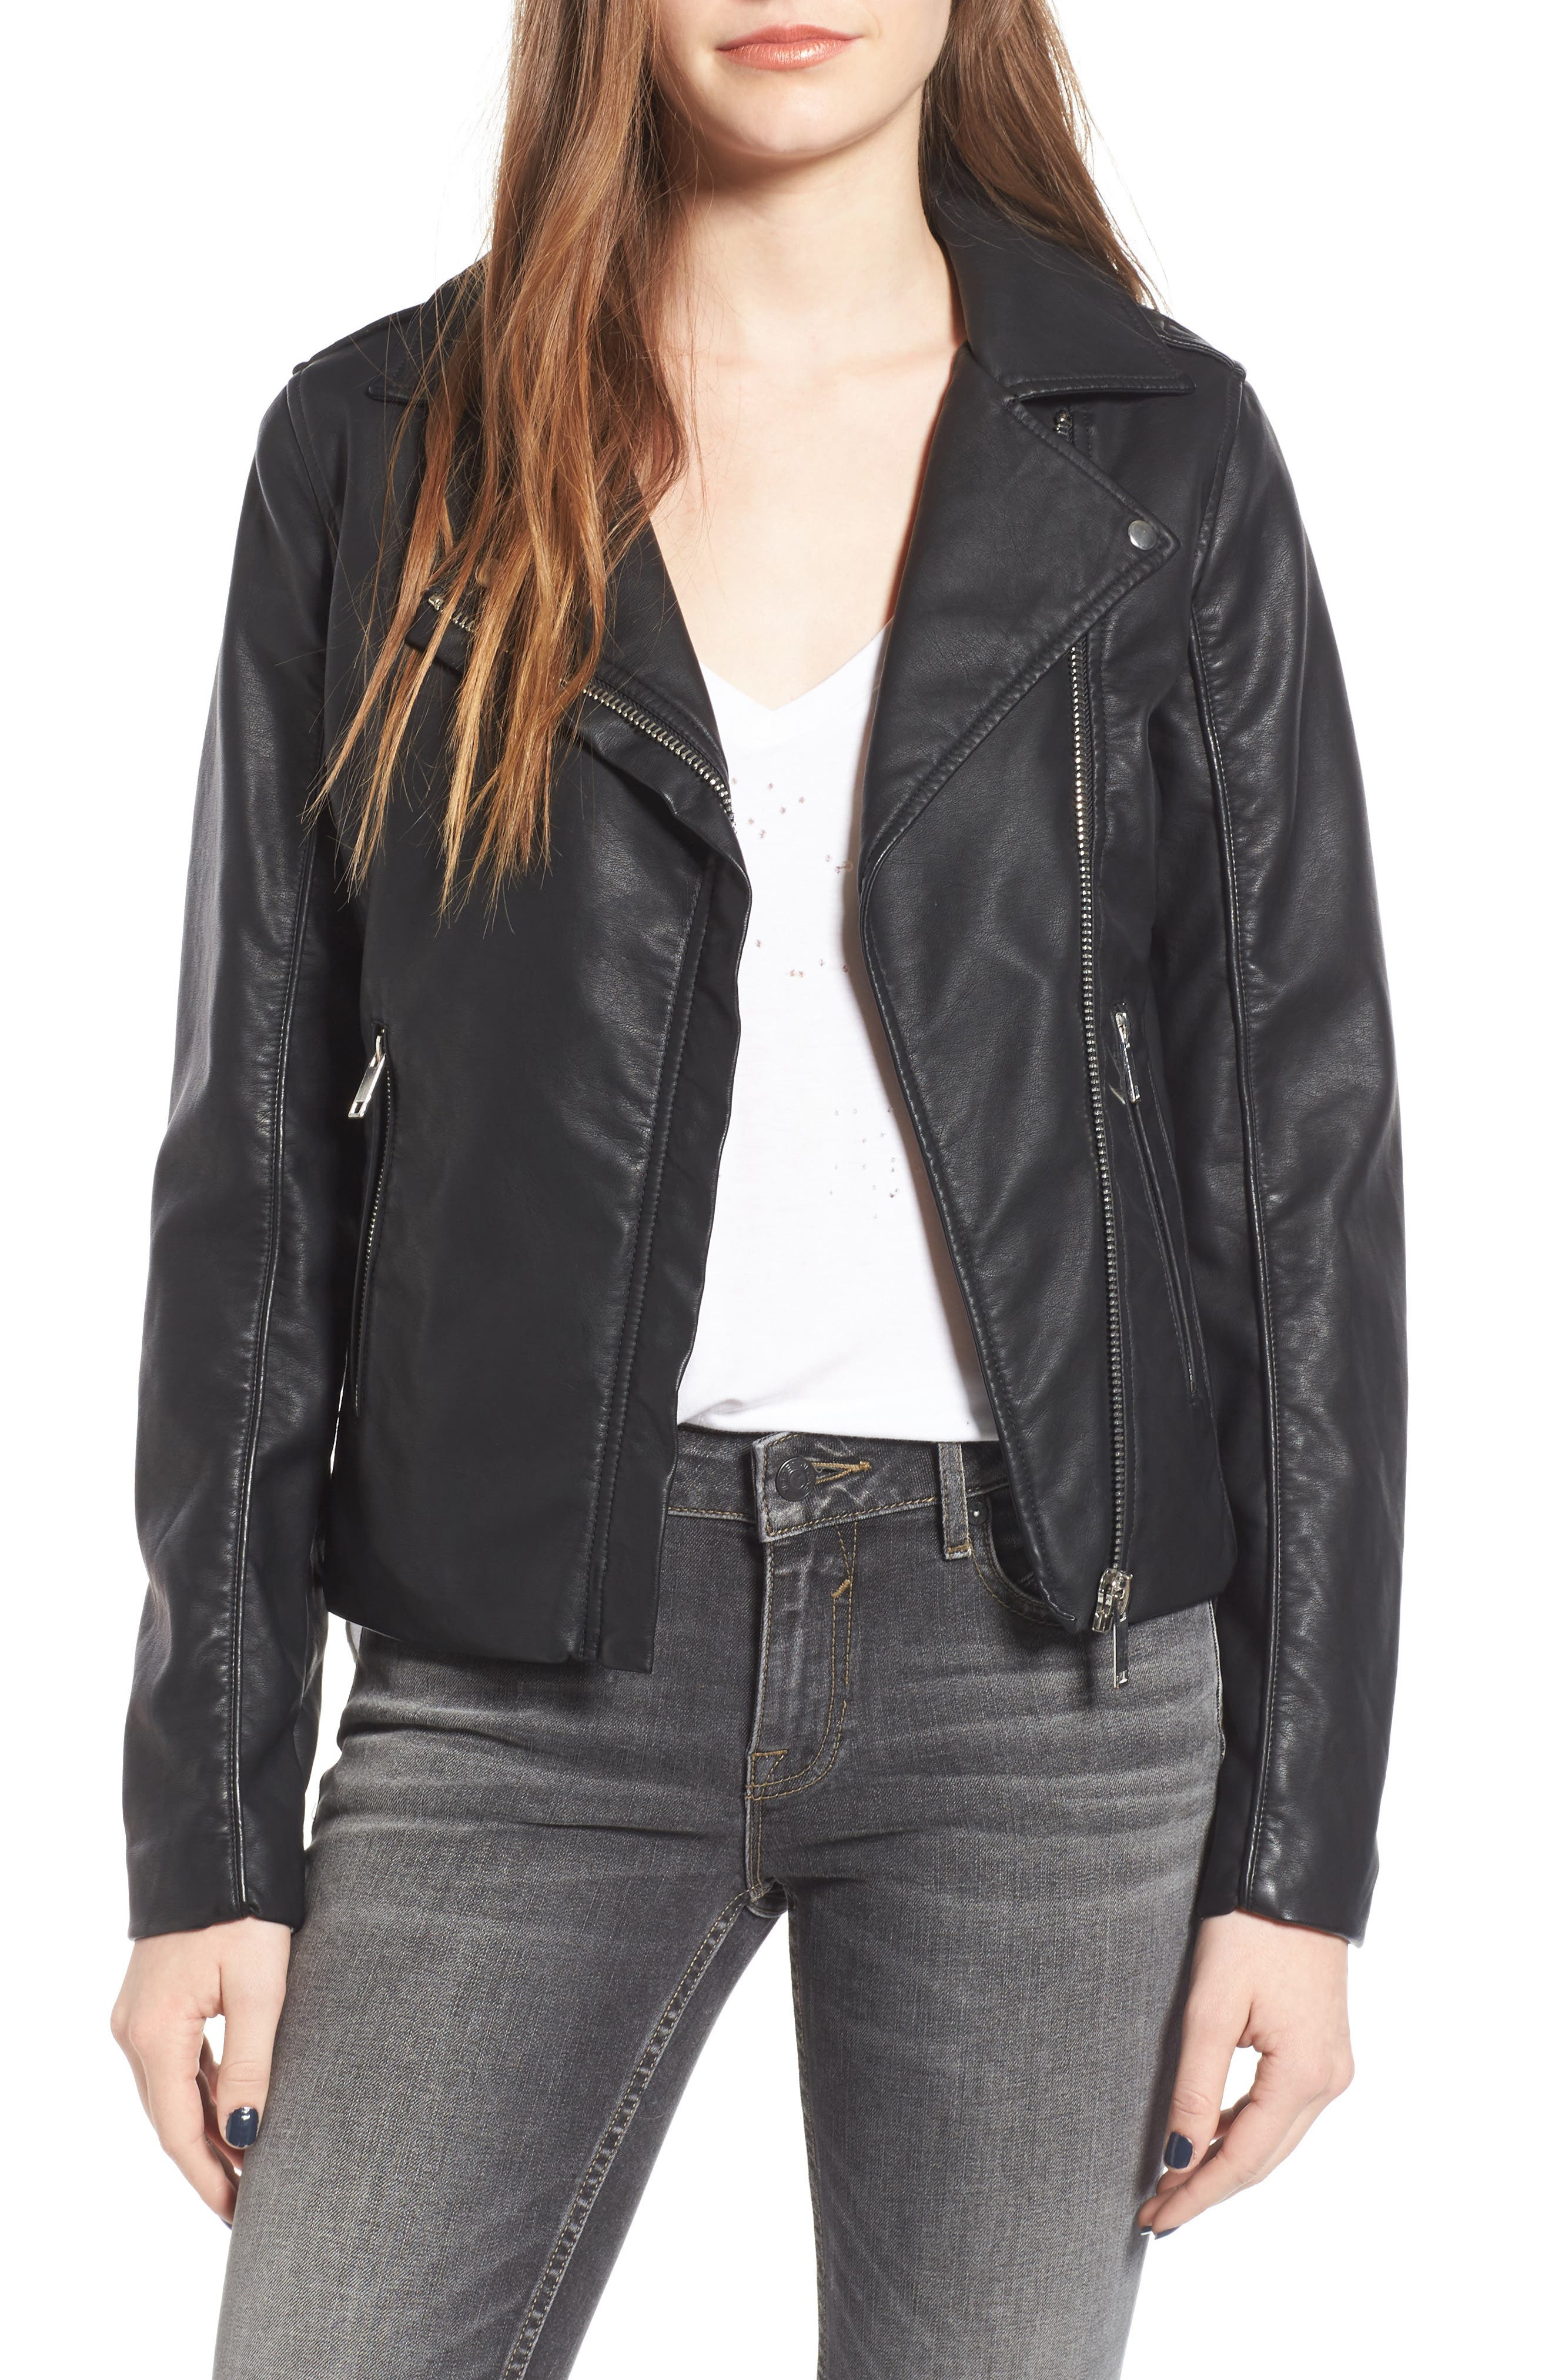 Alternate Image 1 Selected - Thread & Supply Big City Faux Leather Moto Jacket